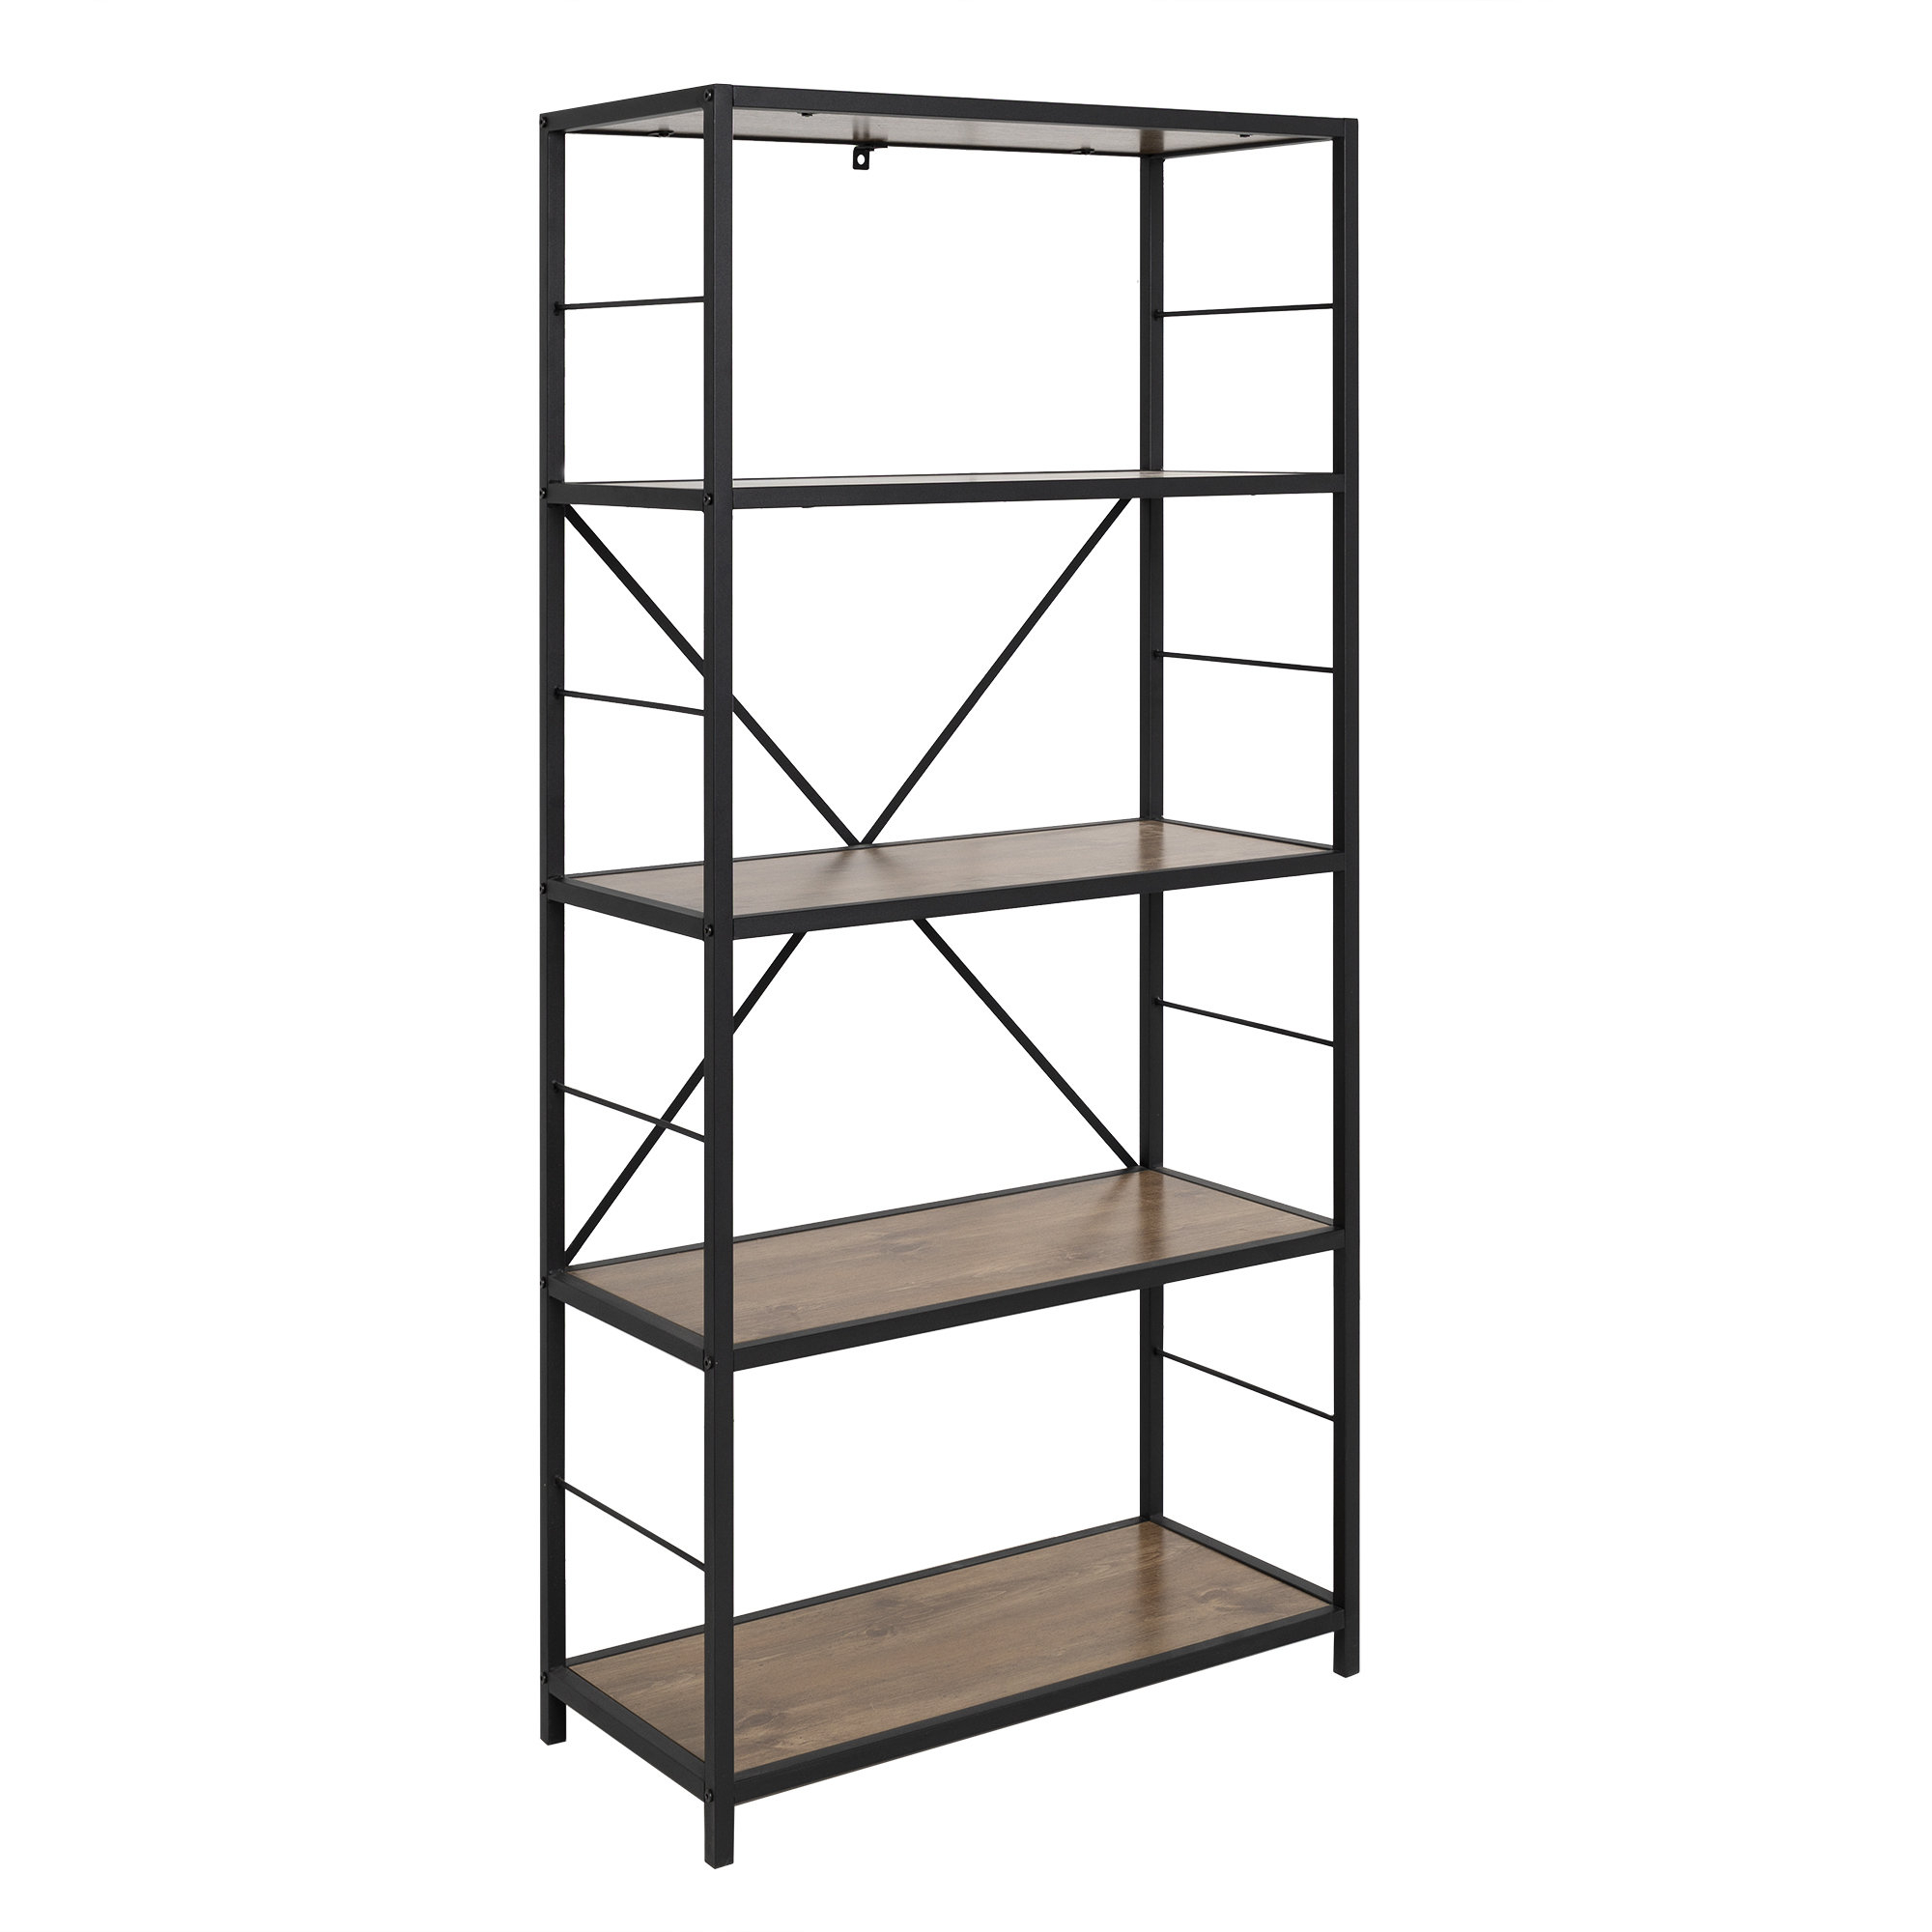 Ermont Etagere Bookcases Pertaining To Most Up To Date Chessani Etagere Bookcase (Gallery 12 of 20)